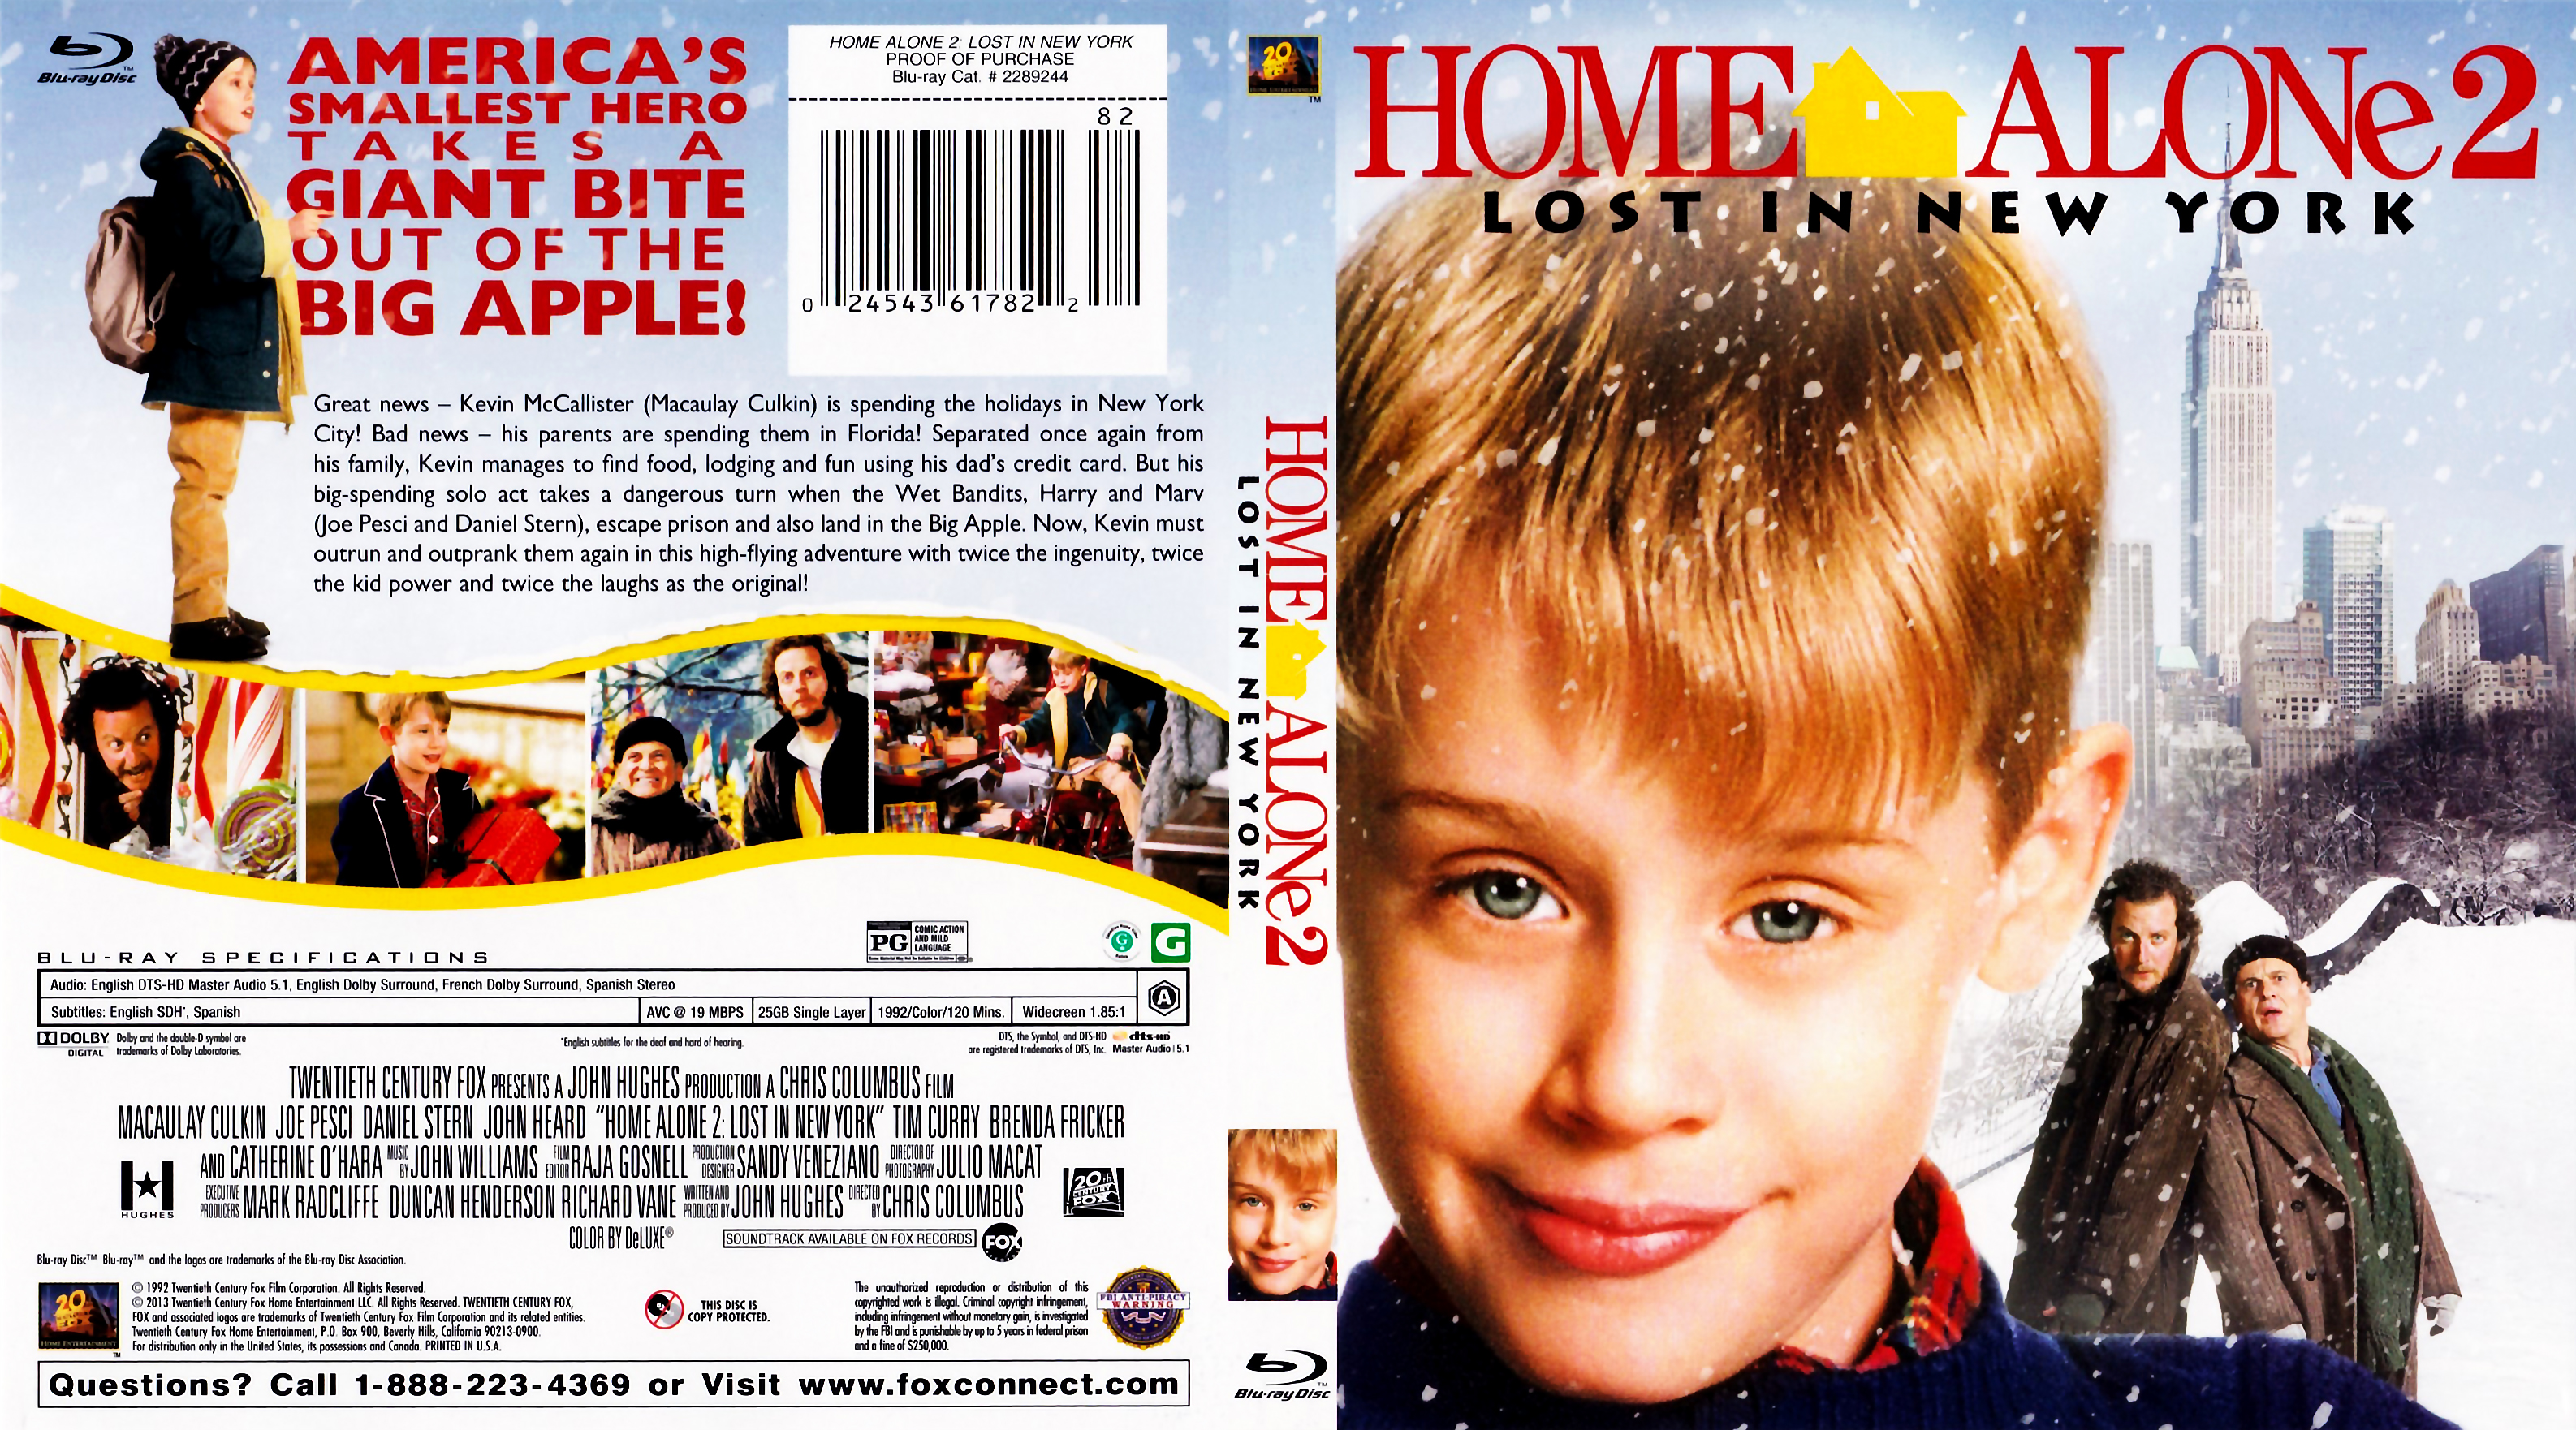 Home Alone 2 Lost In New York 1992 Blu Ray Covers Cover Century Over 500 000 Album Art Covers For Free